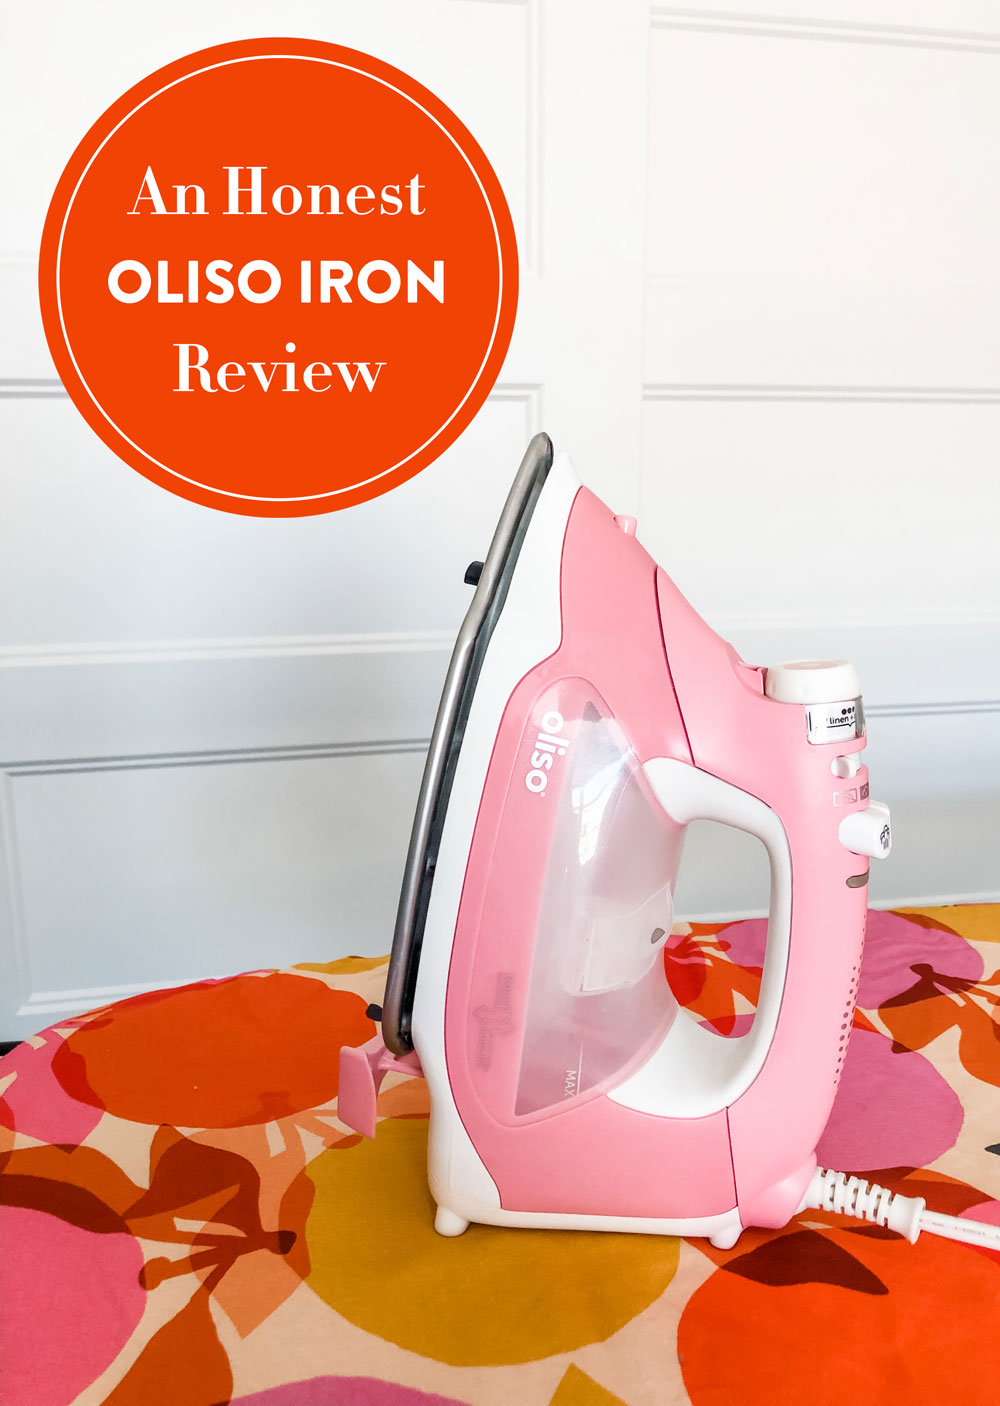 An honest review of the Oliso Iron. It's called a smart iron, but what makes it different than other irons? Is it the best iron for you? suzyquilts.com #sewingiron